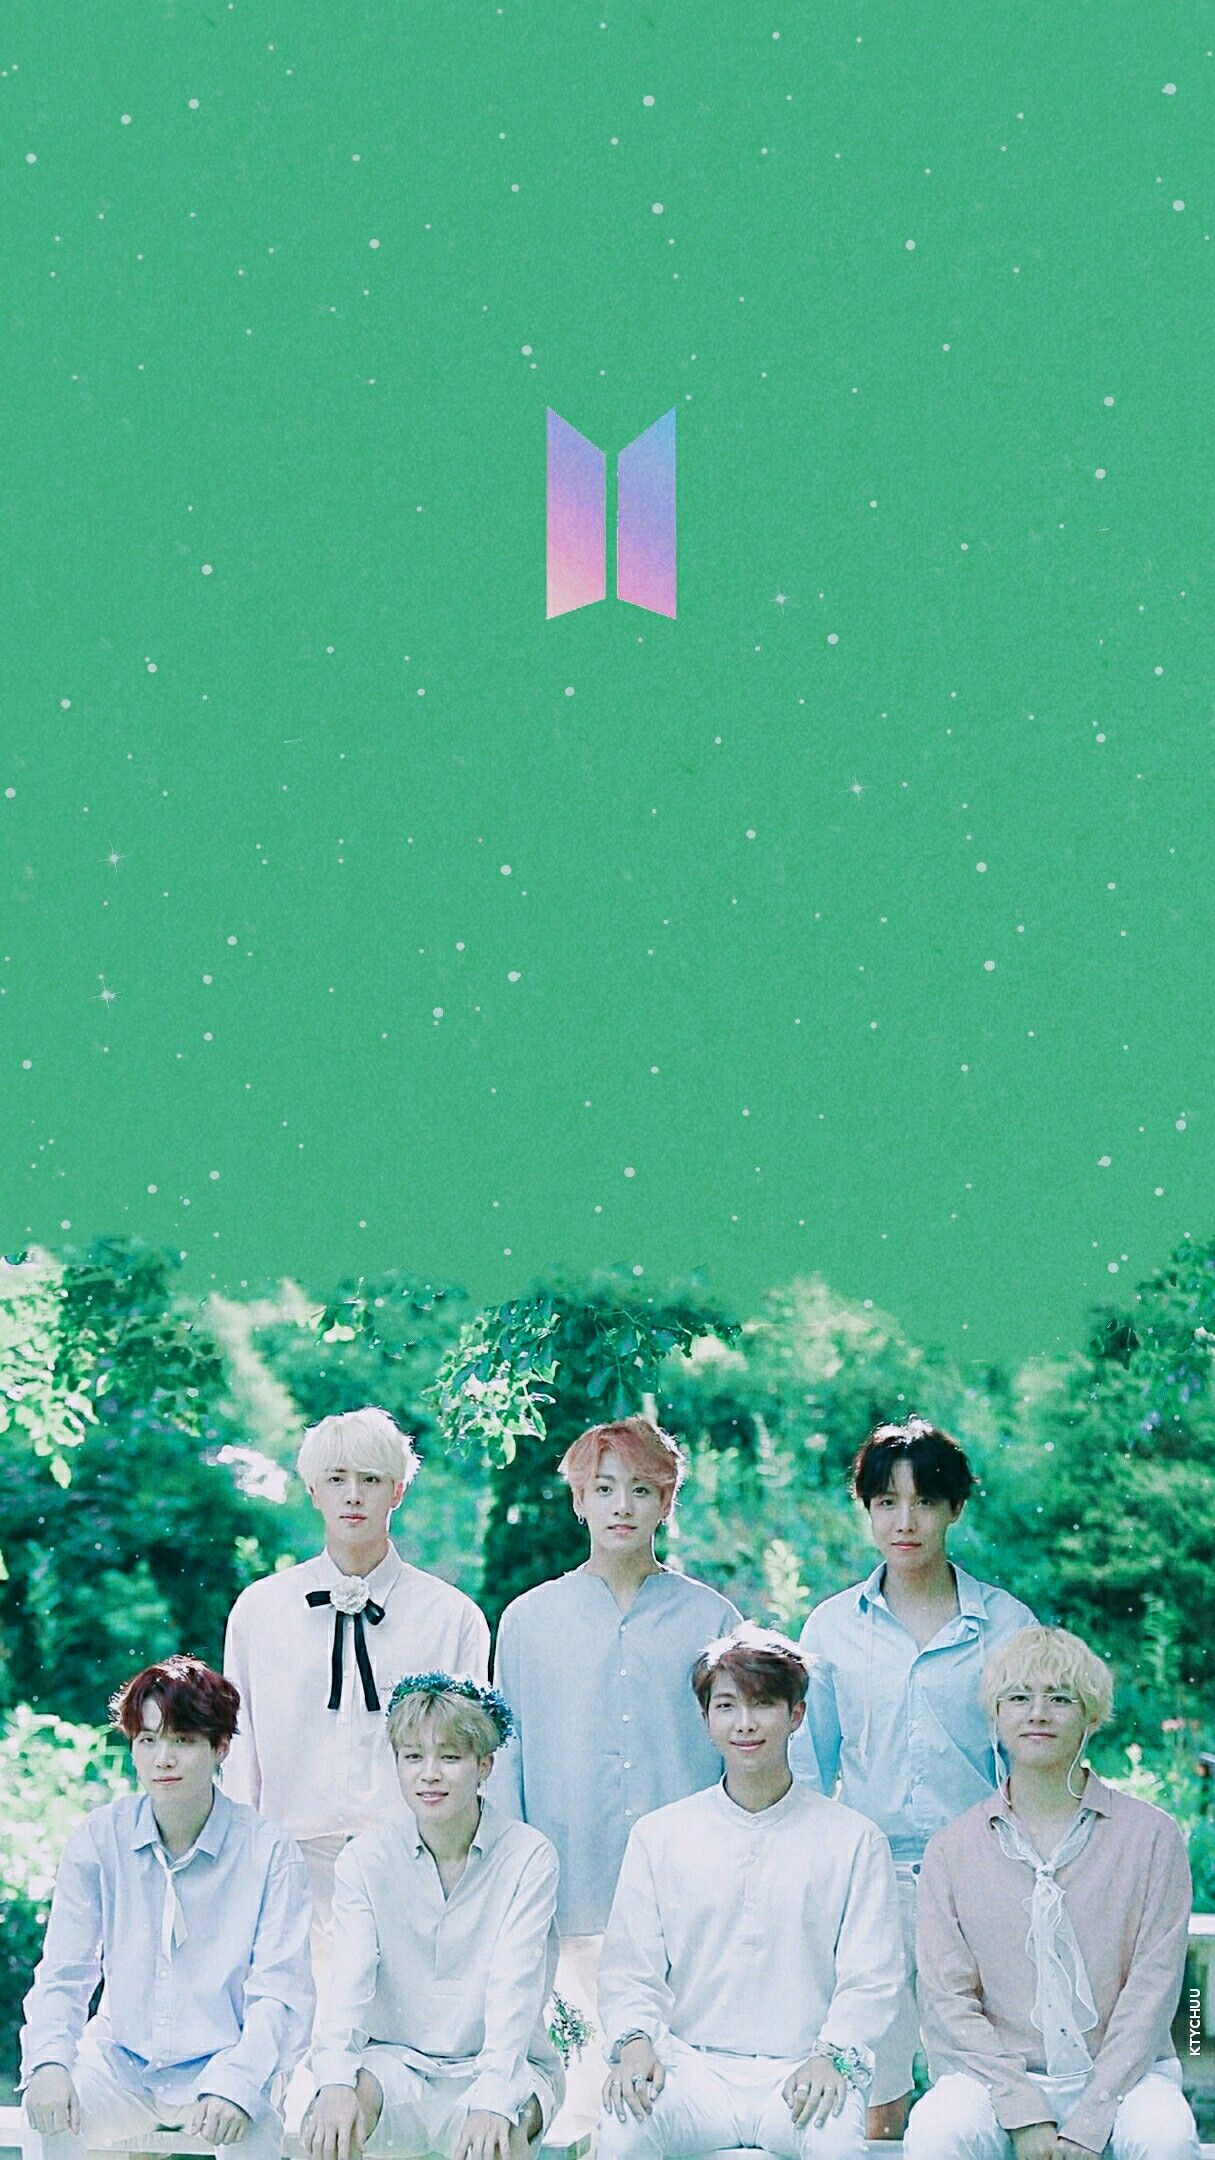 BTS EDITS BTS WALLPAPERS BTS 2019 SEASON GREETINGS pls make 1215x2160